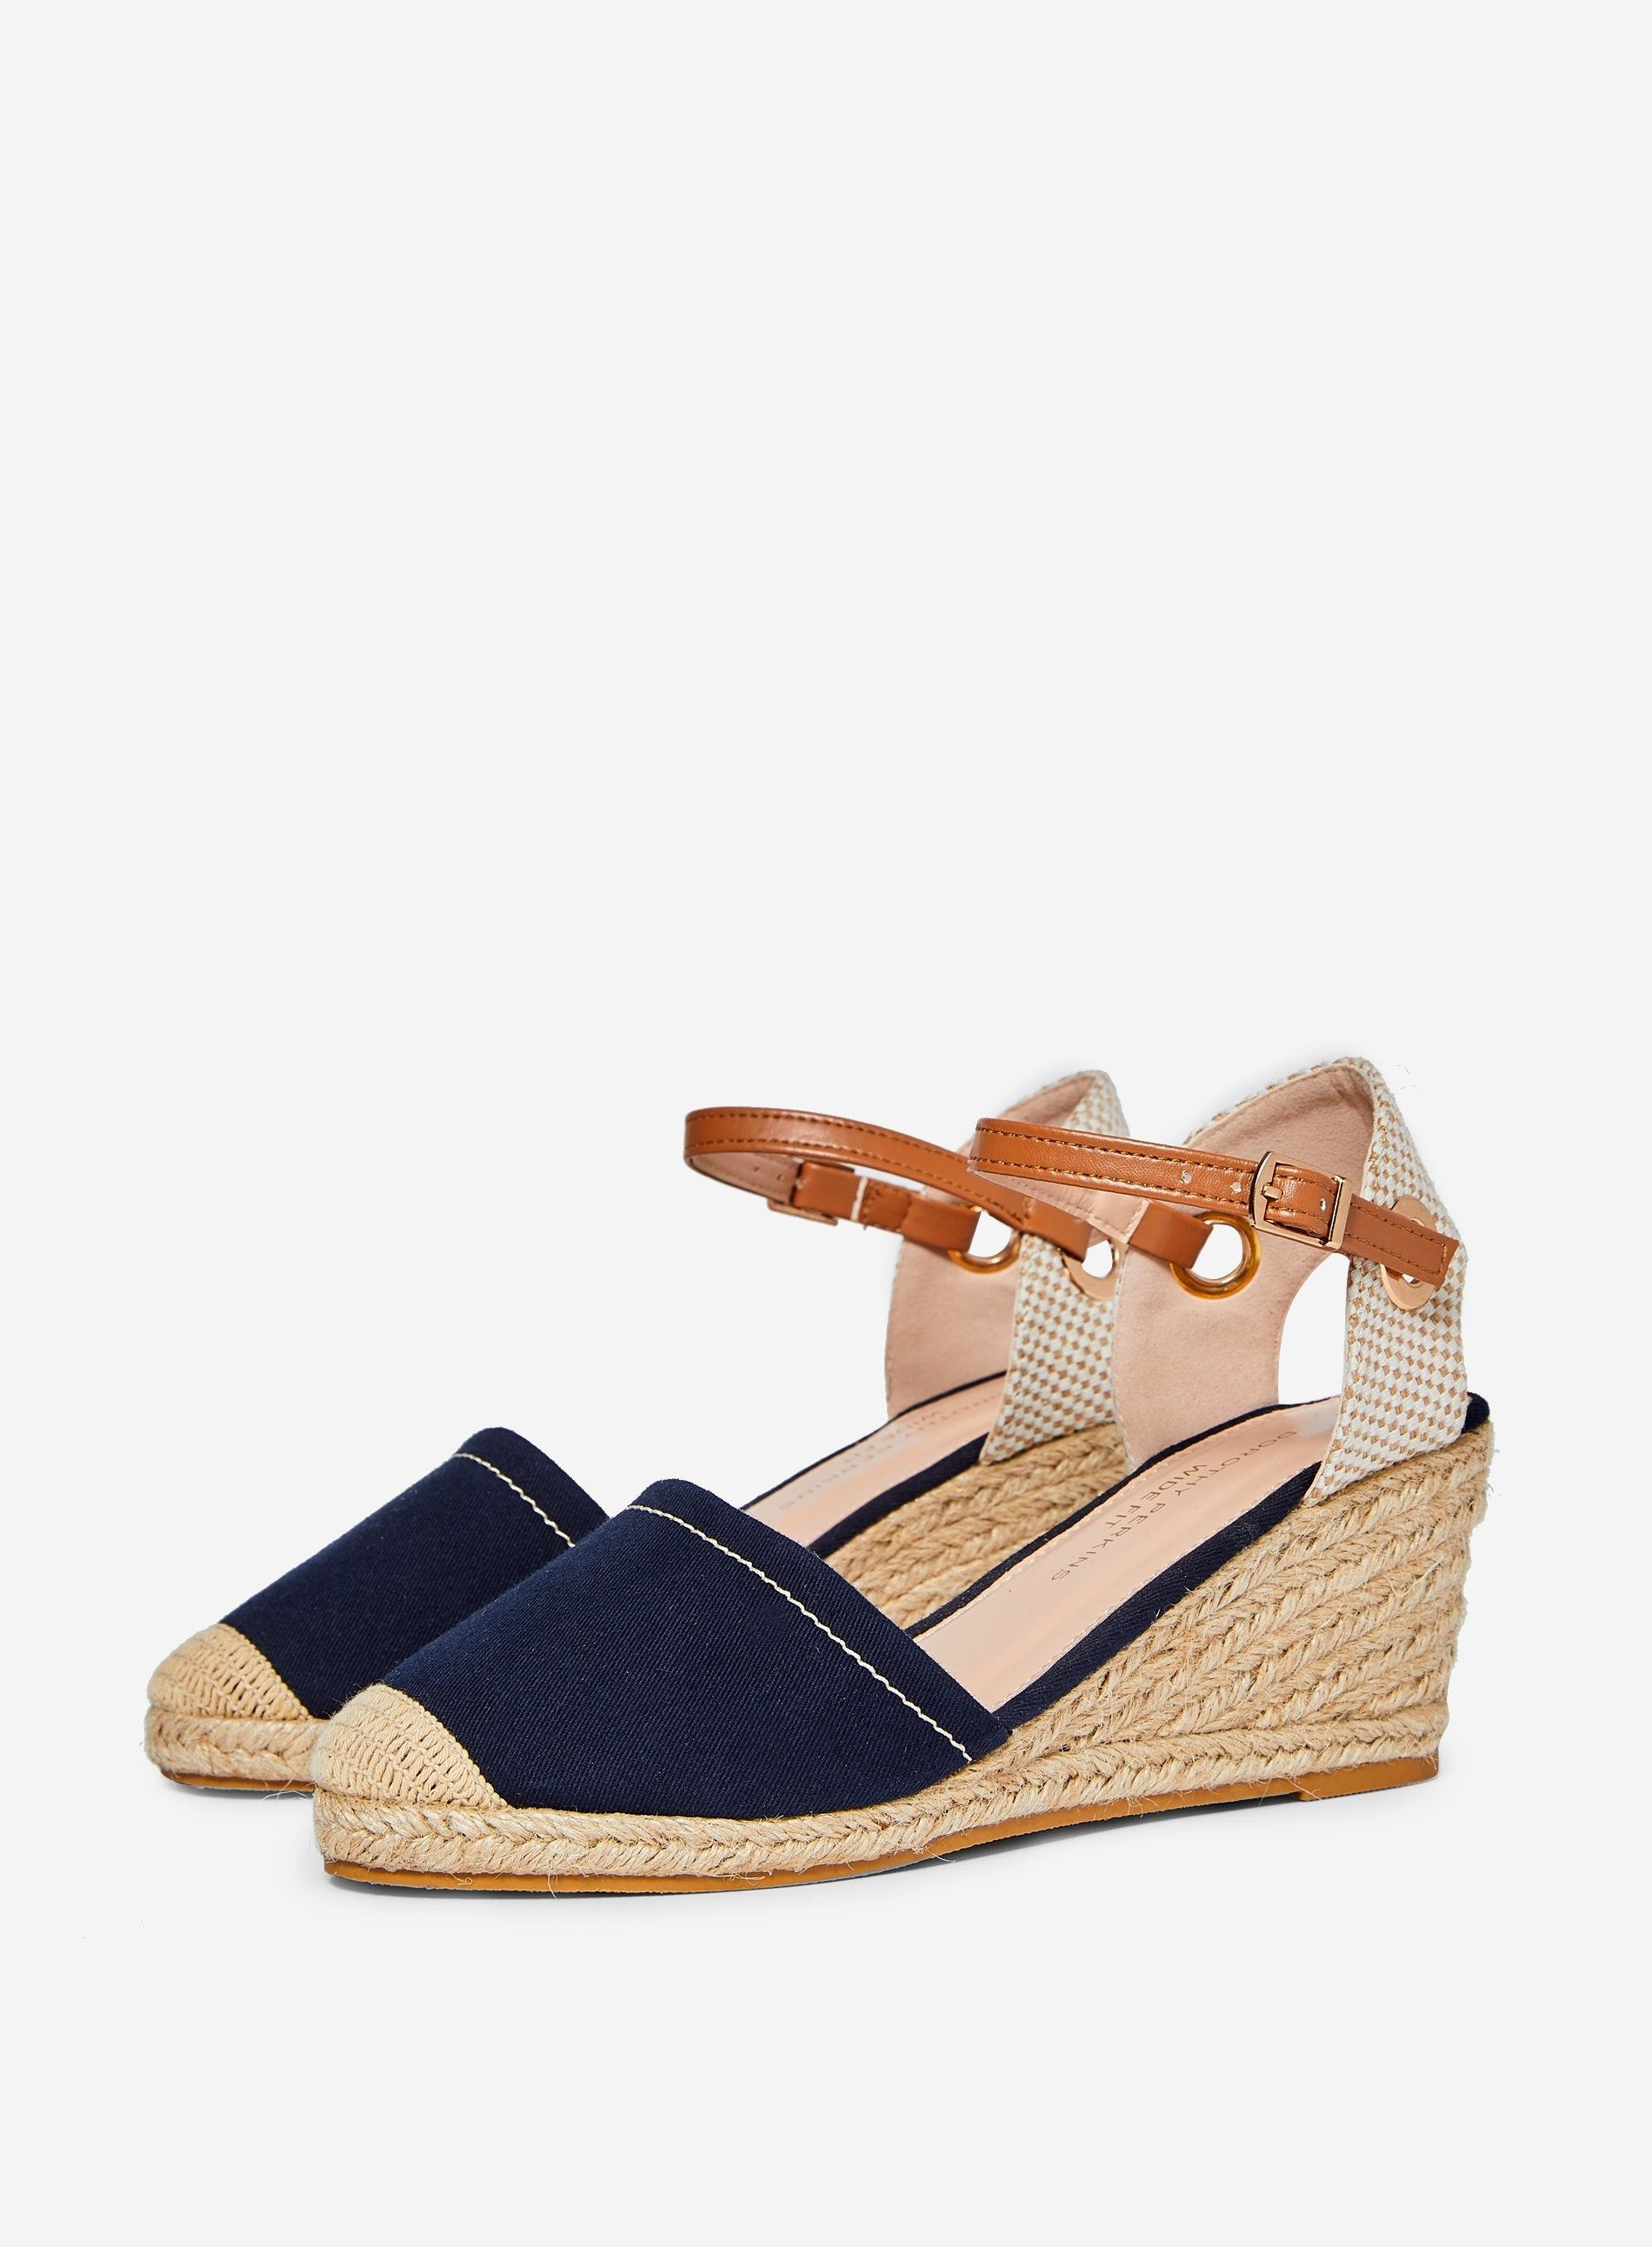 Dorothy Perkins Womens Wide Fit Blue Rose Espadrilles Buckle Round Toe Shoes